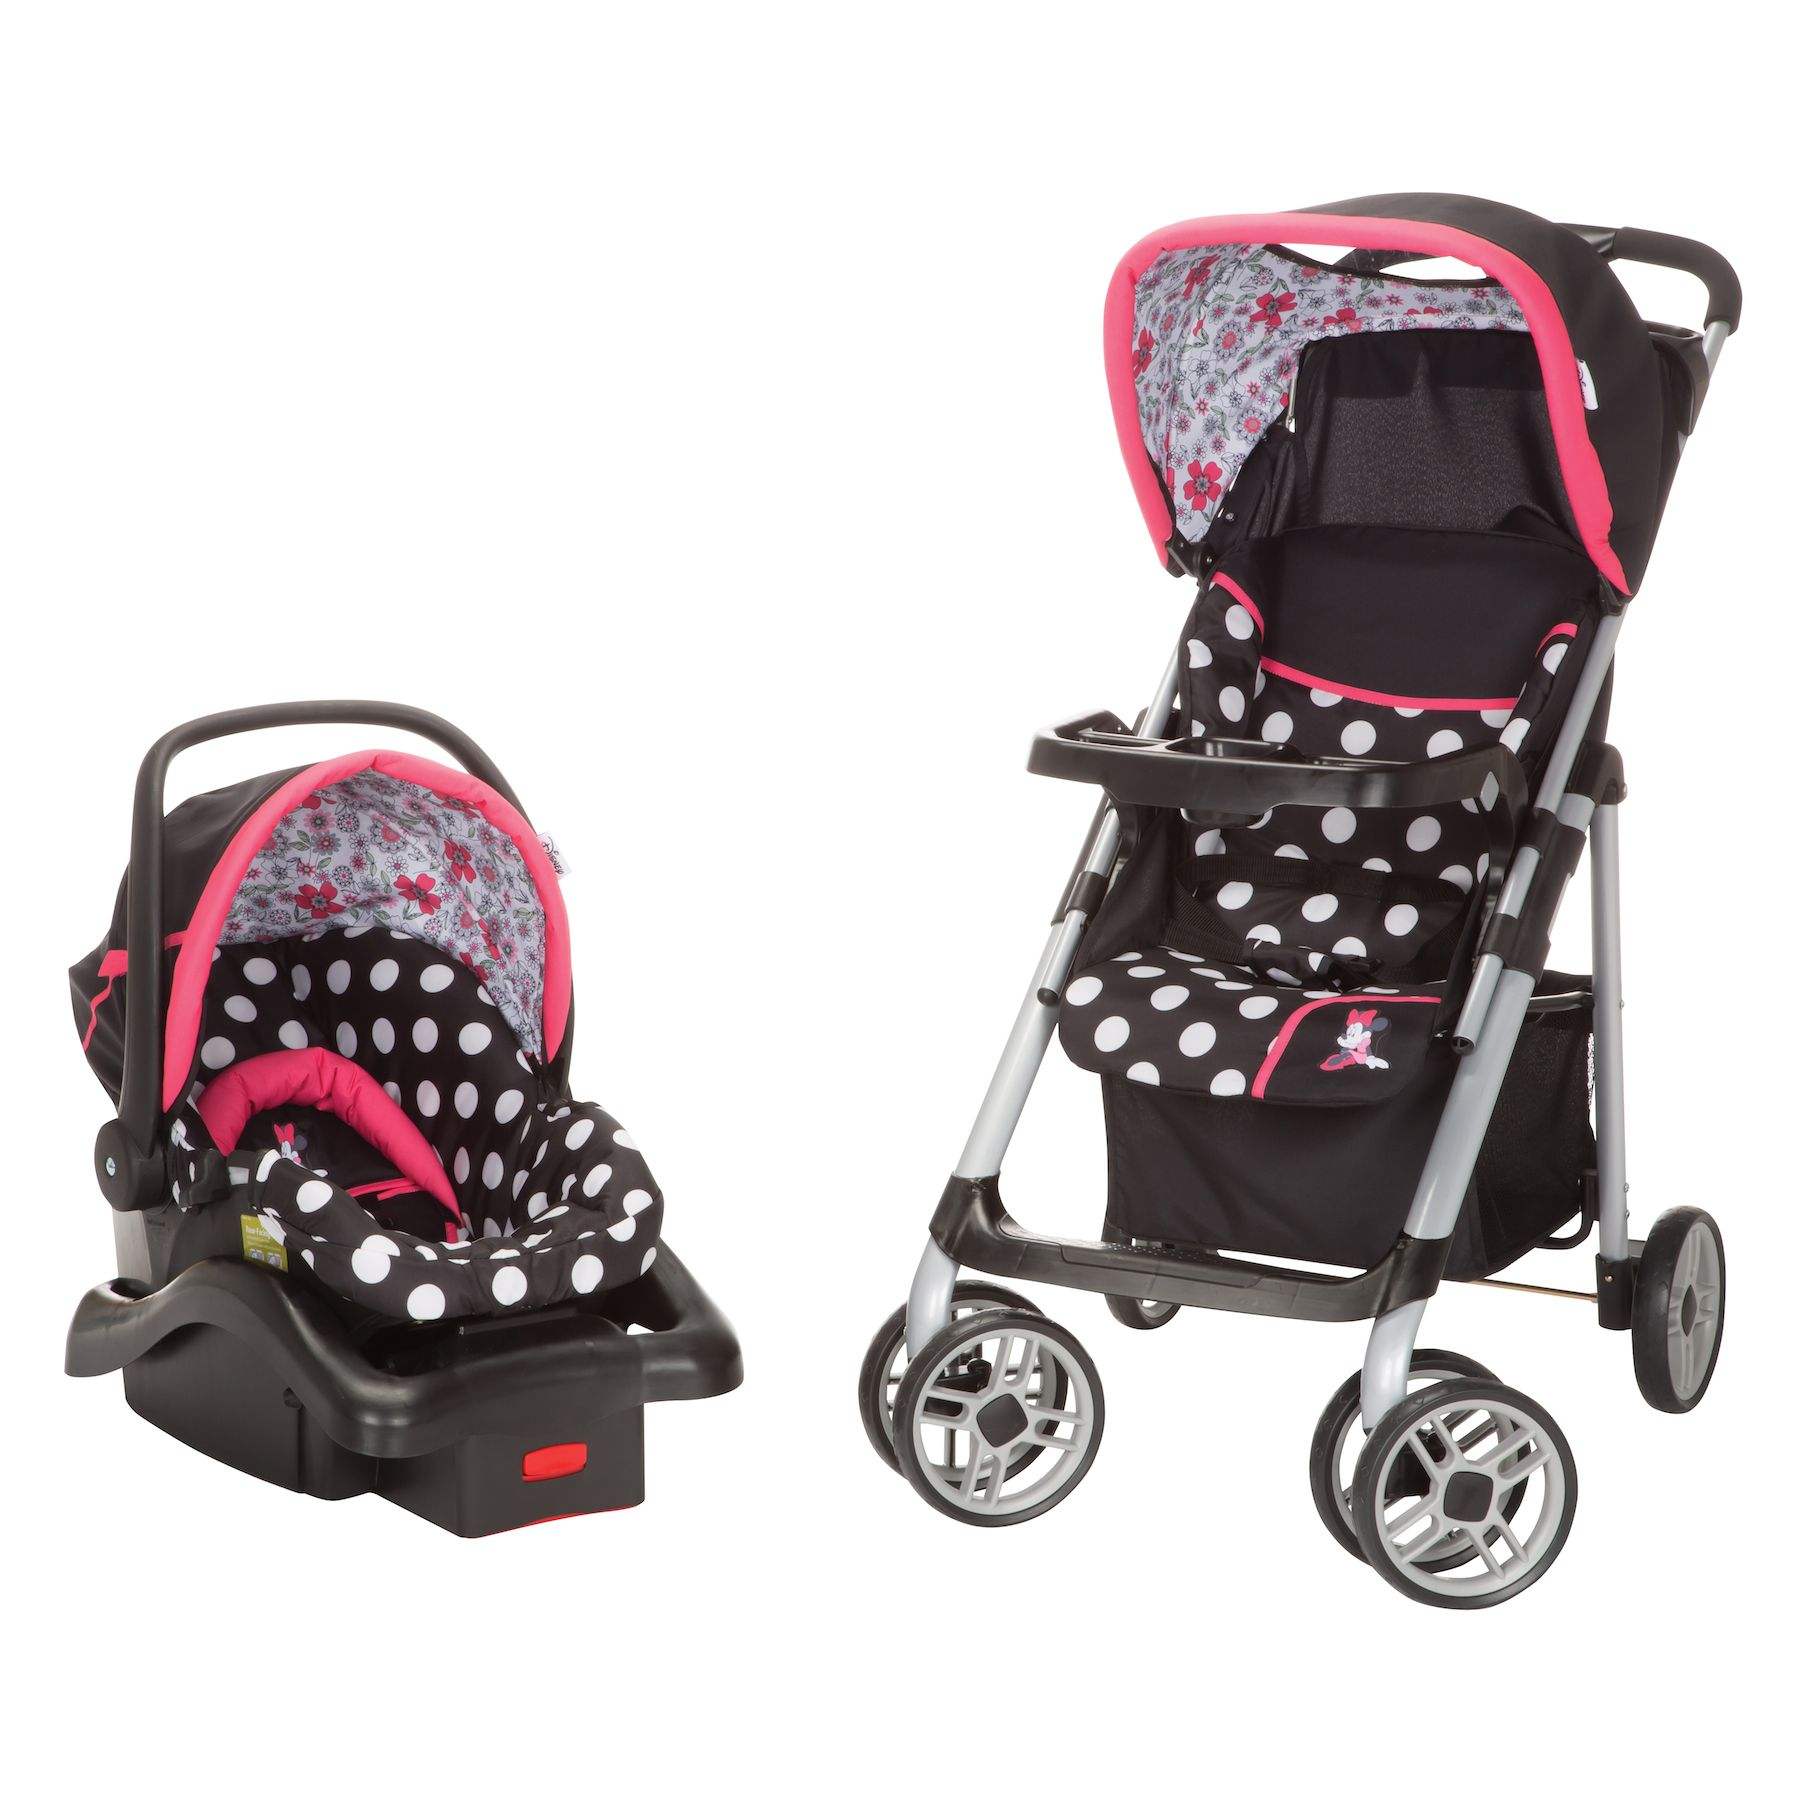 Keep fashion strollin' along! This black and pink Minnie